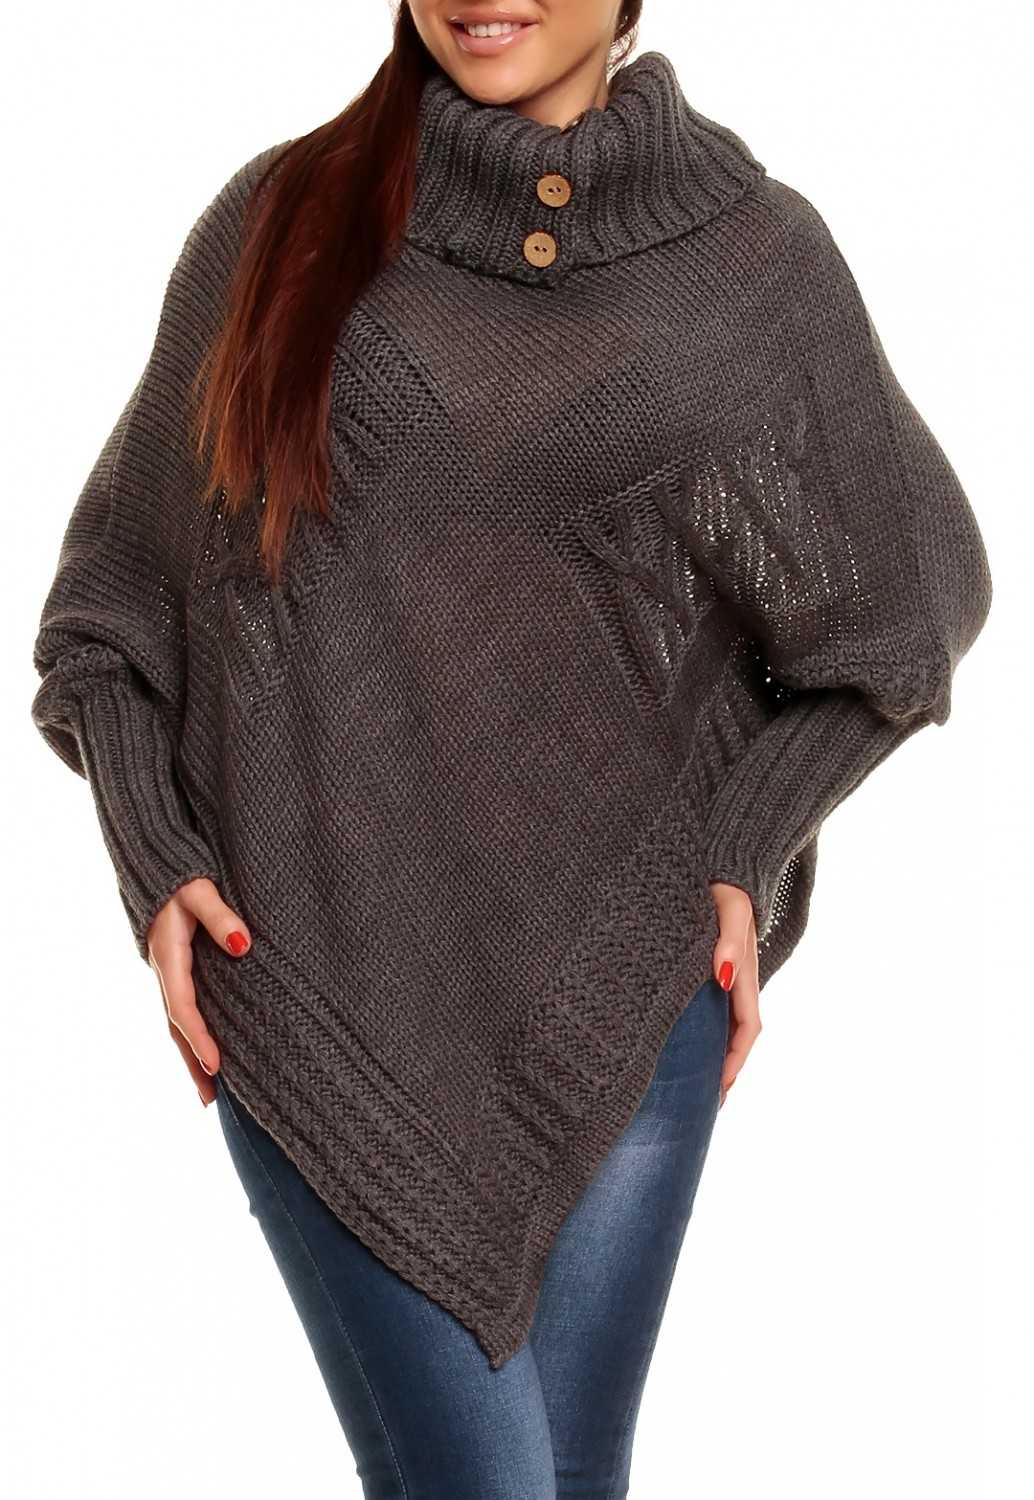 Glamour Empire Women's Warm Knit Poncho Sweater Batwing Cape Top ...